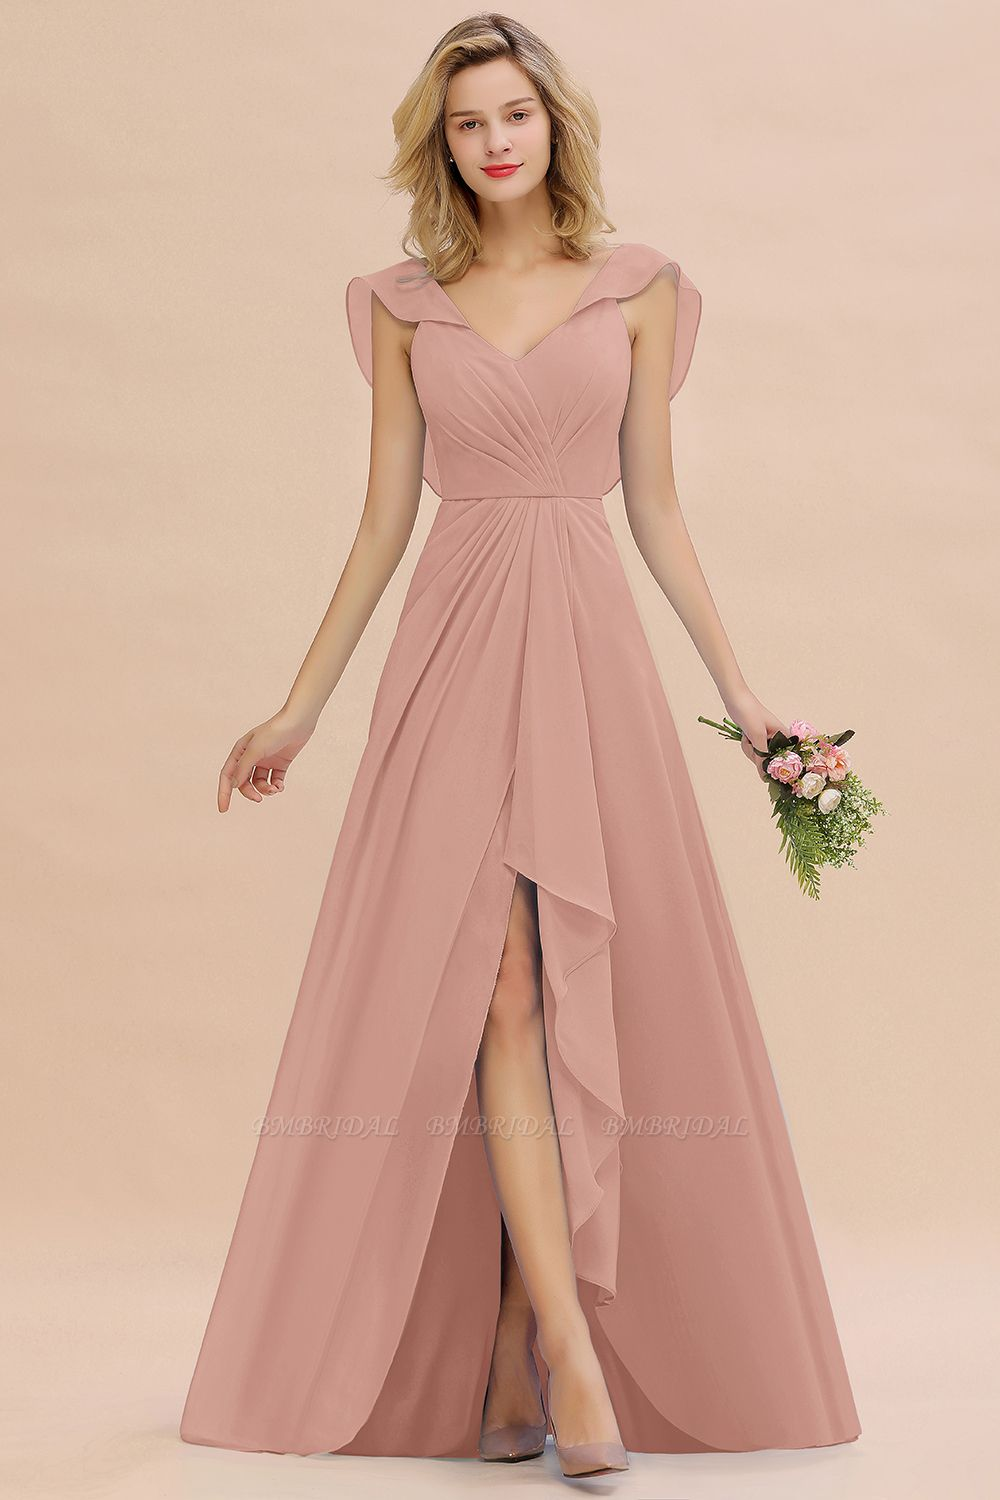 BMbridal Modest Hi-Lo V-Neck Ruffle Long Bridesmaid Dress with Slit